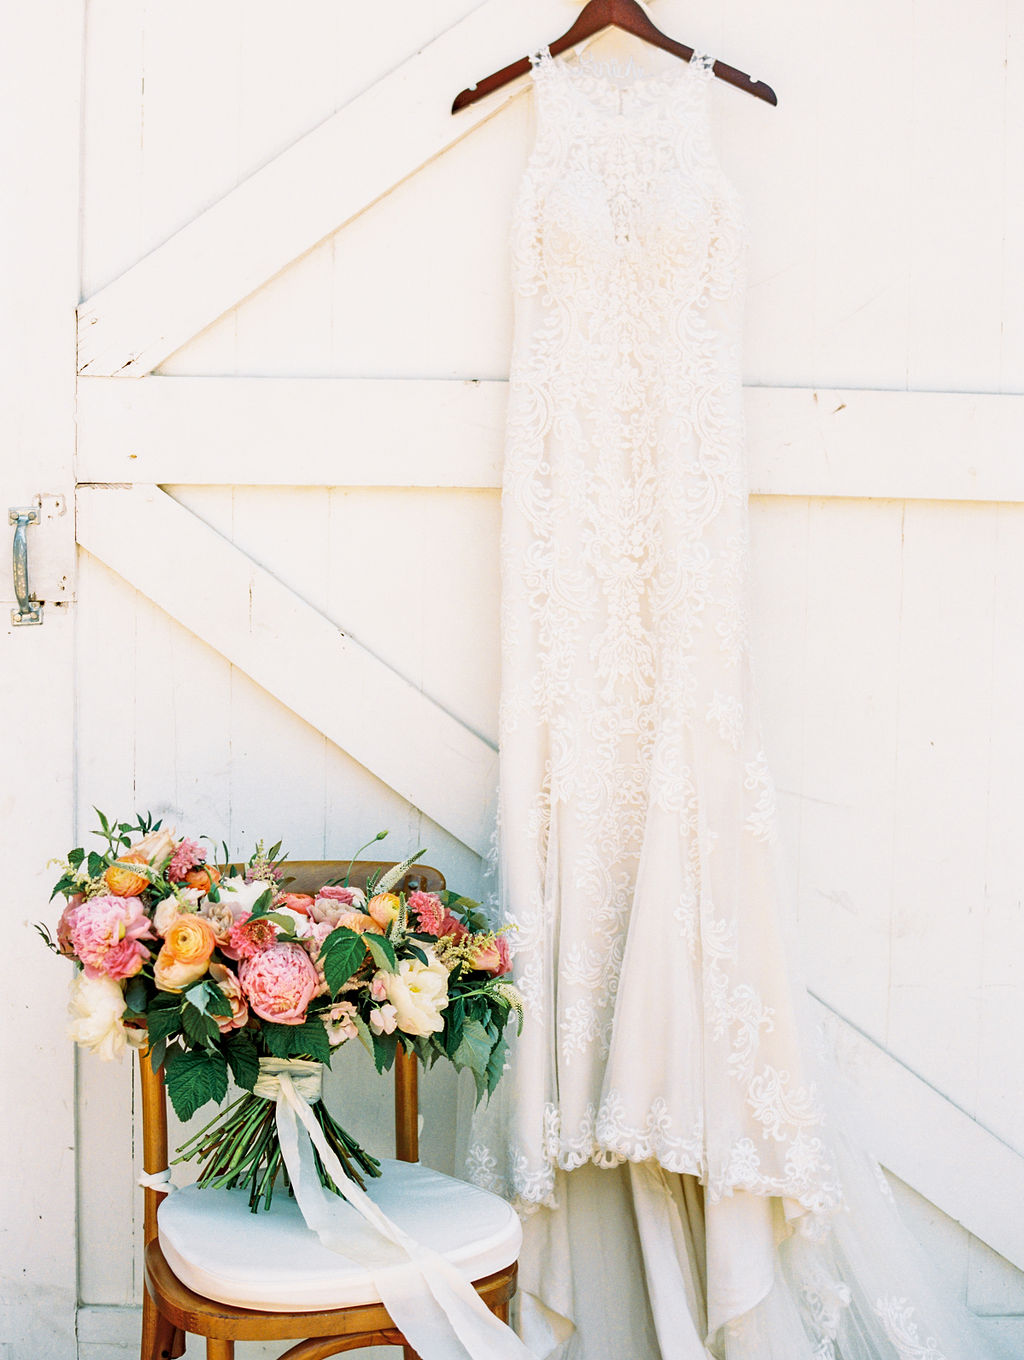 Lace Wedding Dress and Colorful Bouquet Sally Pinera Photography